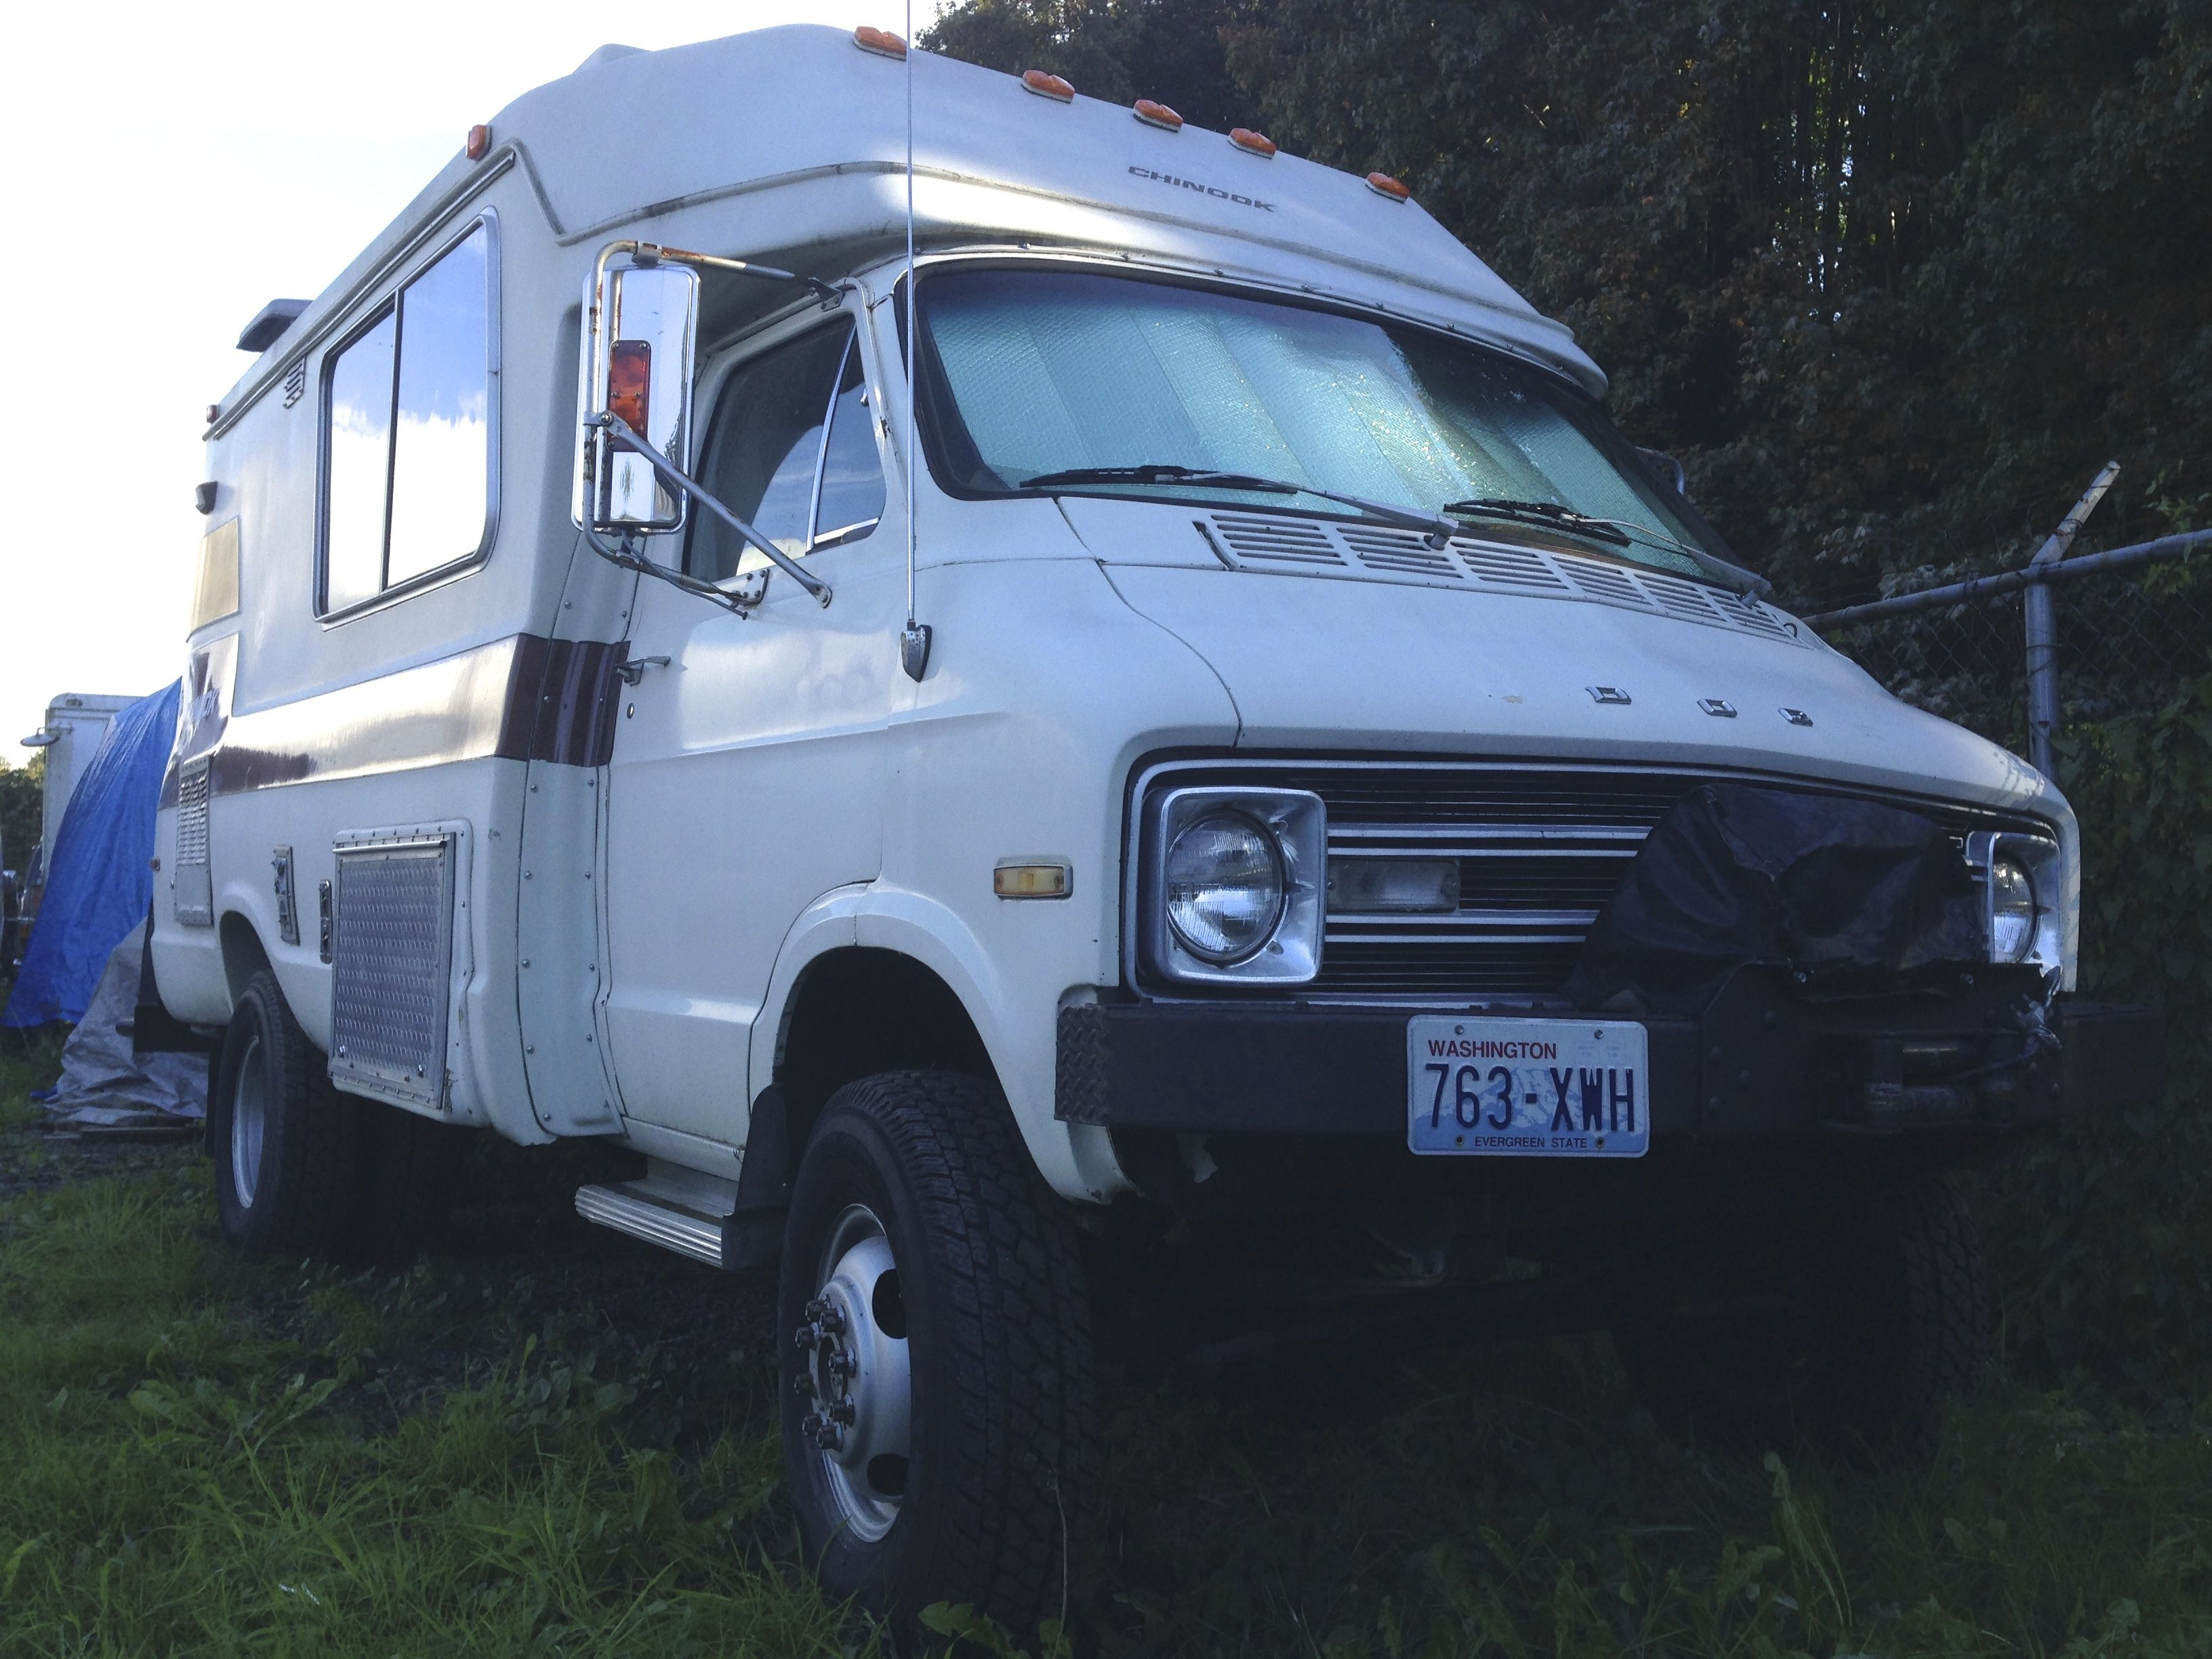 Campers For Sale In Louisiana >> 1977 chinook | 4x4 rv | Pinterest | Chinook rv, Van camping and Rv